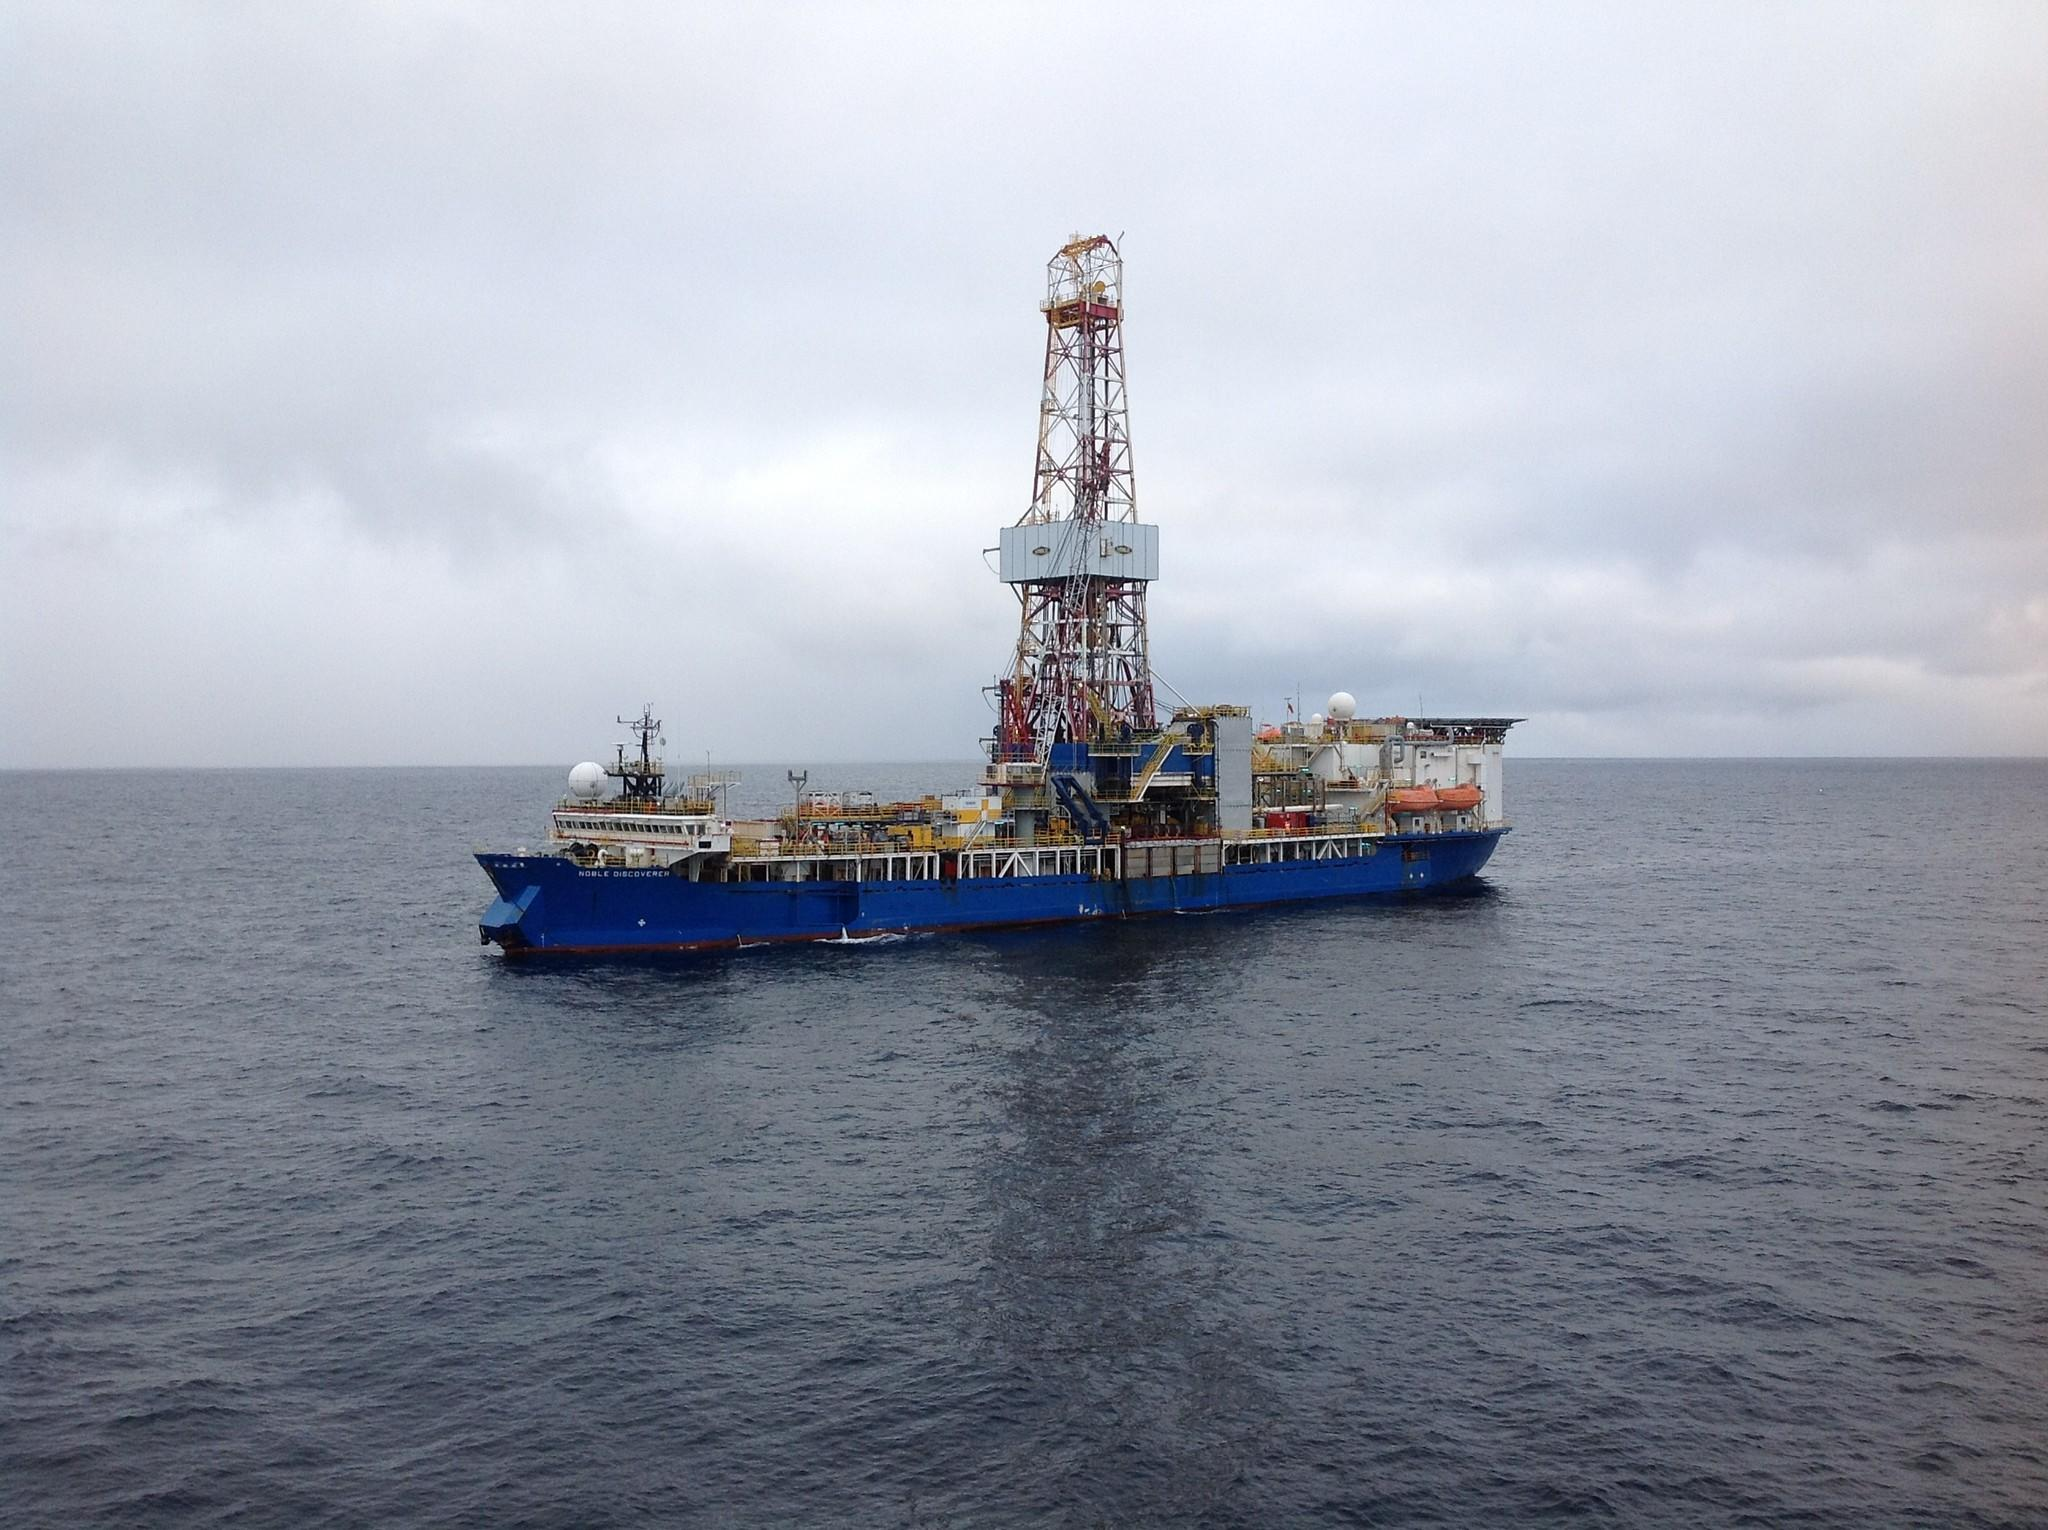 The Shell drilling rig Noble Discoverer is shown in the Chukchi Sea.